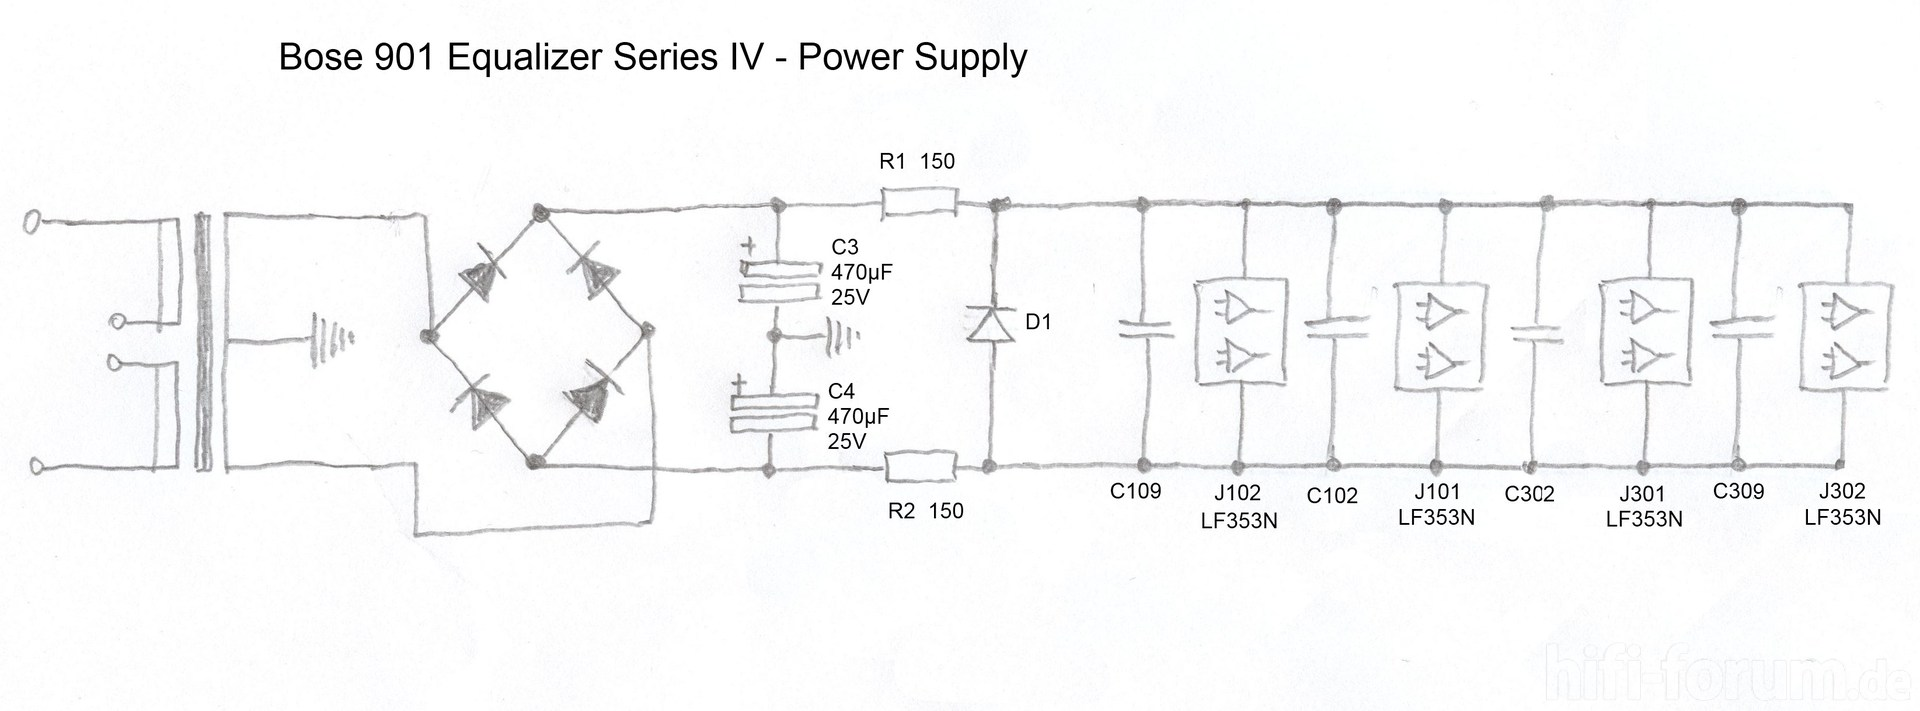 bose 901 equalizer iv schematic detail power supply_214315 bose 901 equalizer schematic bose 901 wiring diagram bose bose 901 wiring diagram at crackthecode.co